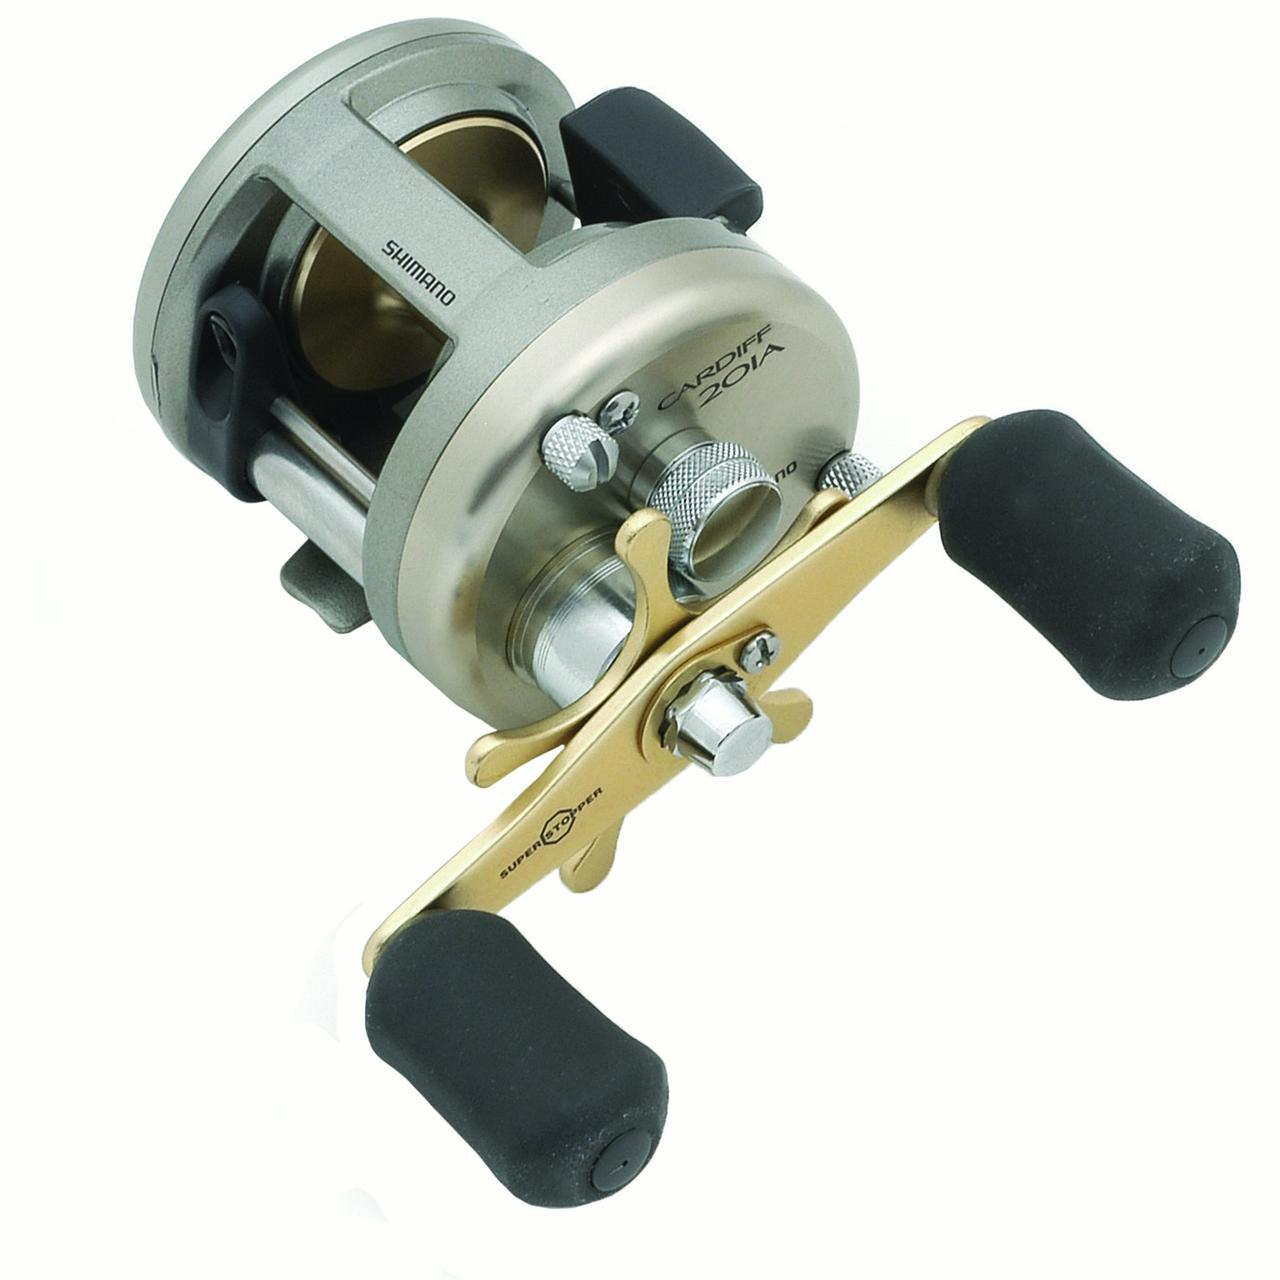 "Shimano Cardiff Baitcasting Reel 200 Reel Size, 5.8:1 Gear Ratio, 24"" Retrieve Rate, 5 Bearings, Left Hand"